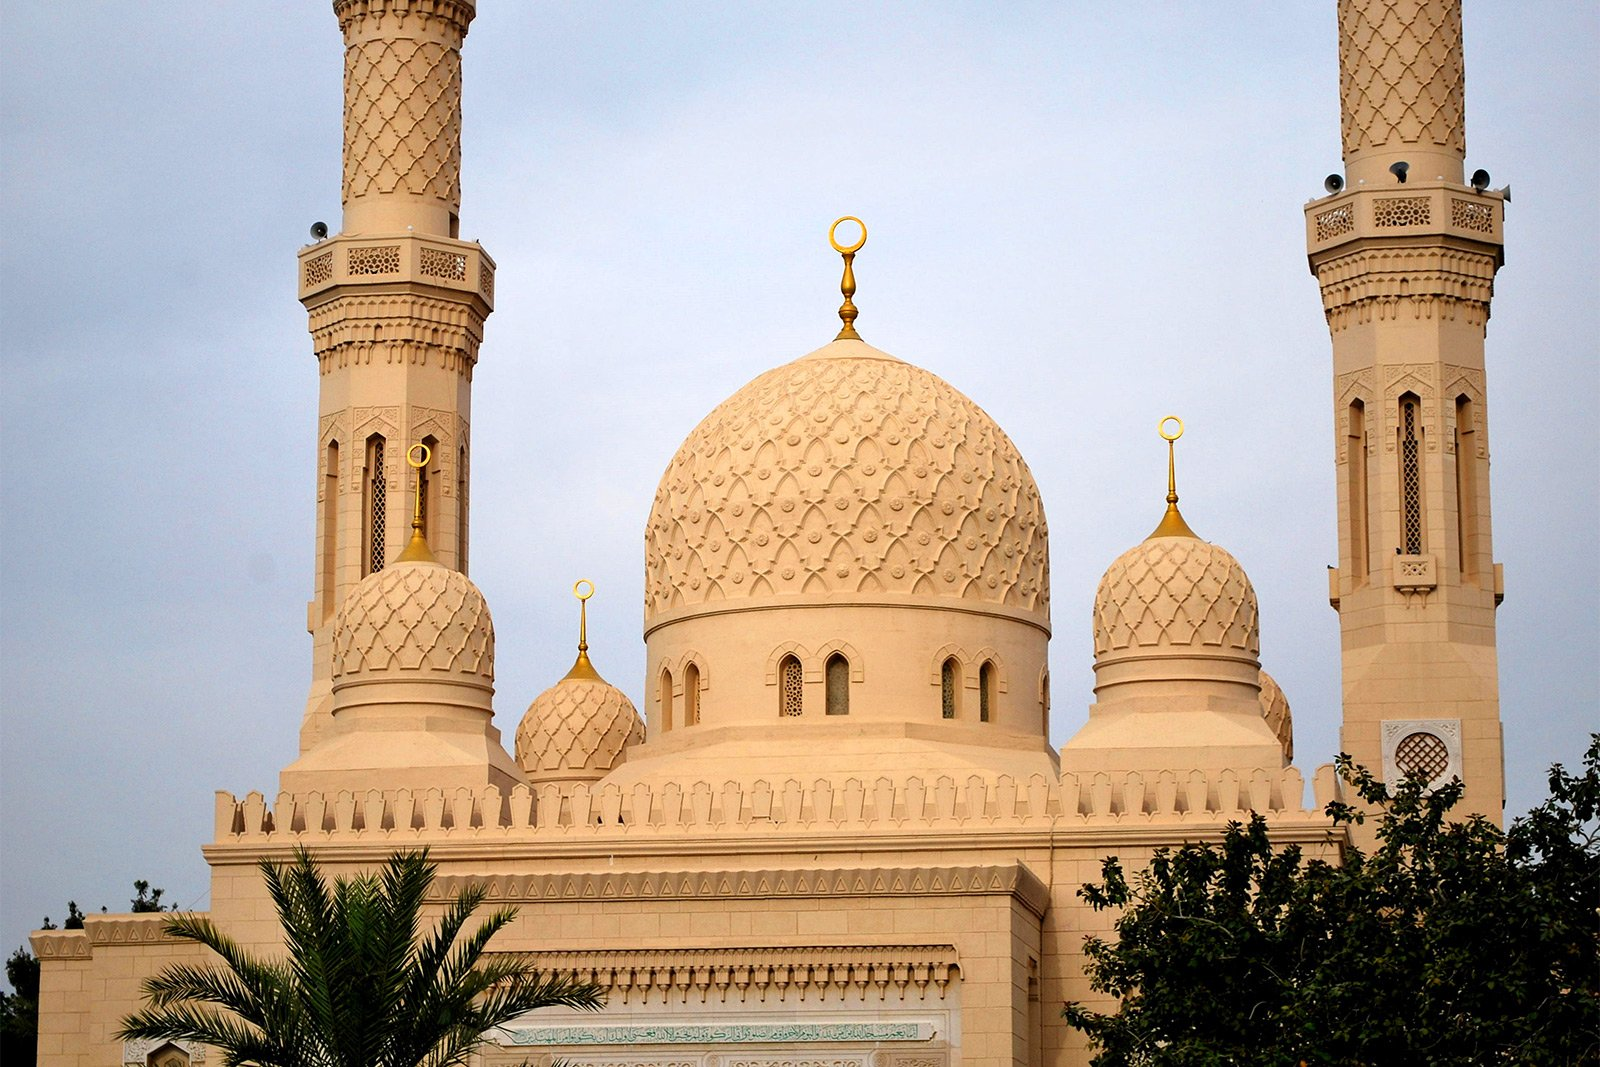 Visit Jumeirah Mosque on 3